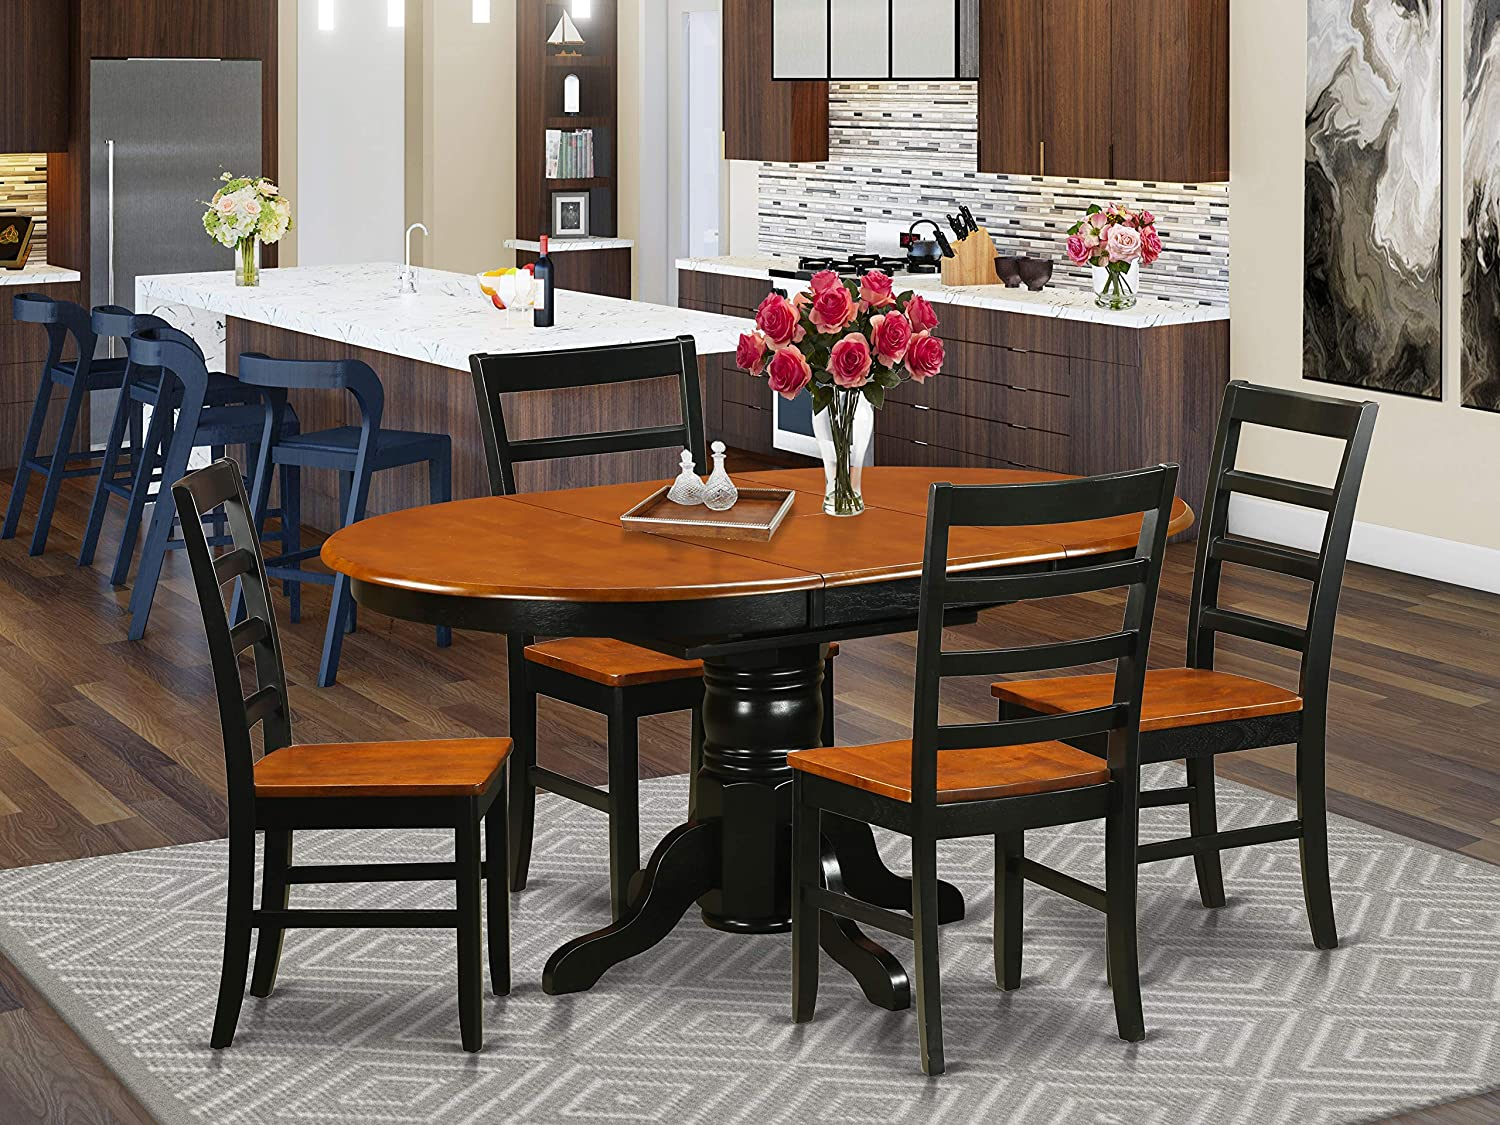 East West Furniture Kitchen Table, Cherry Wood Dining Room Set